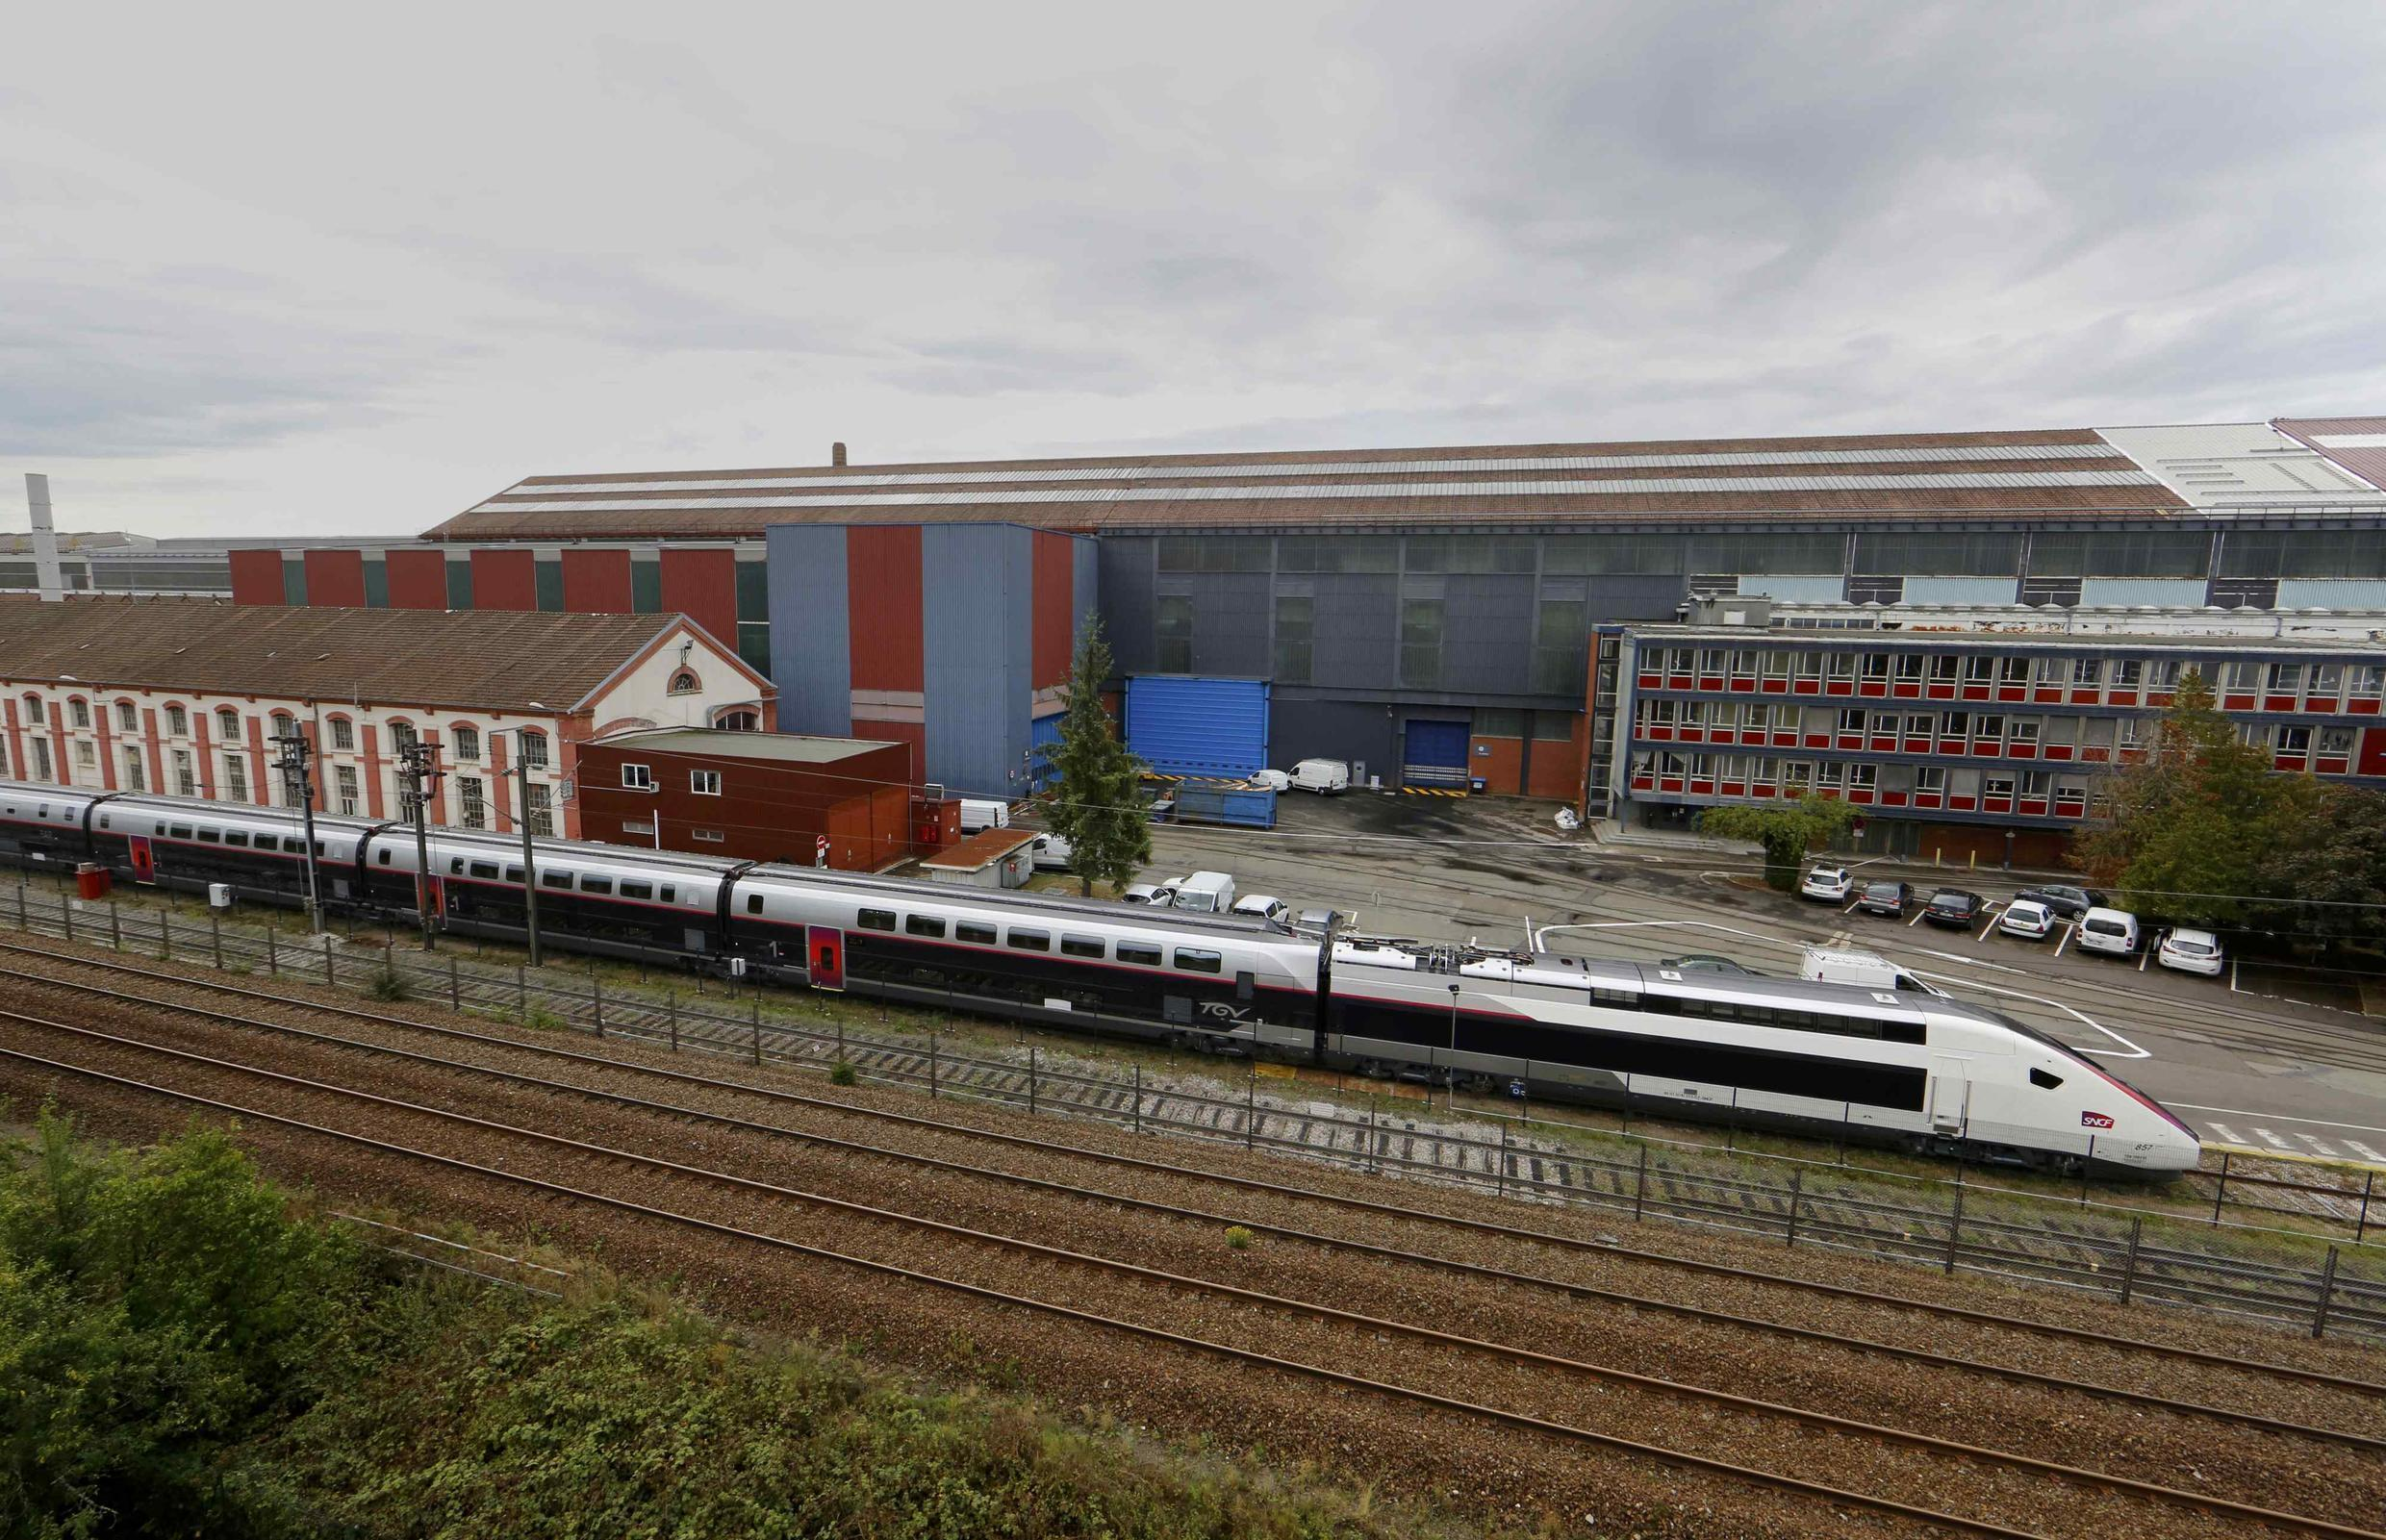 A high-speed TGV train sits outside the Alstom plant in Belfort, France.